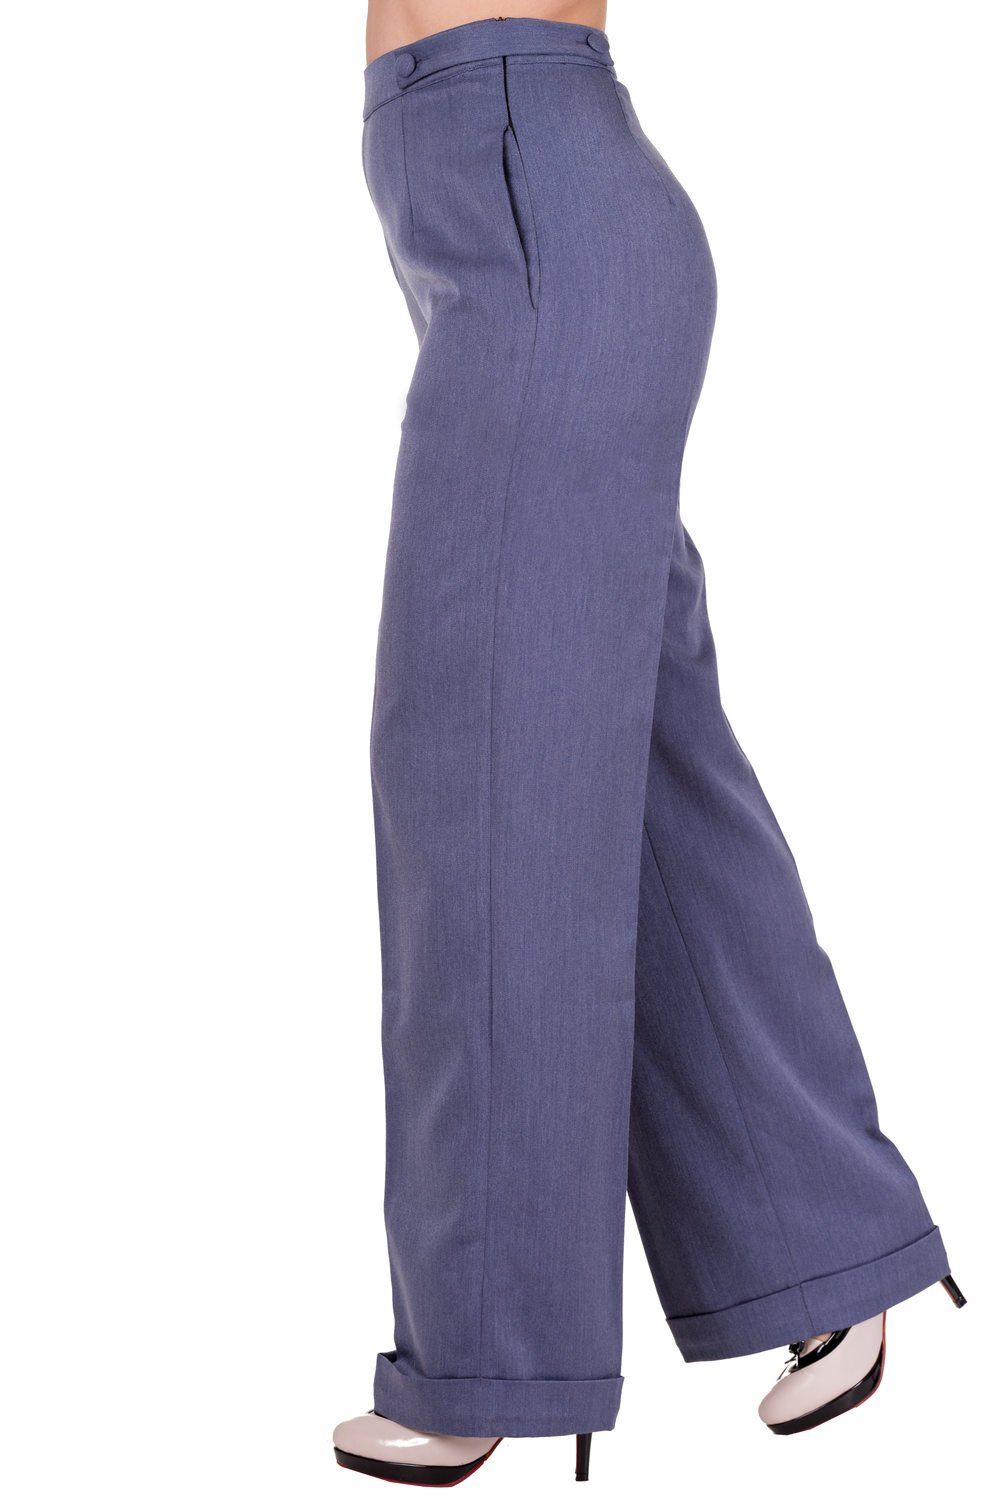 Agent Peggy Carter Costume, Dress, Hats Denim Banned Party On Trousers - 26 to 34 Inch Waist $33.82 AT vintagedancer.com